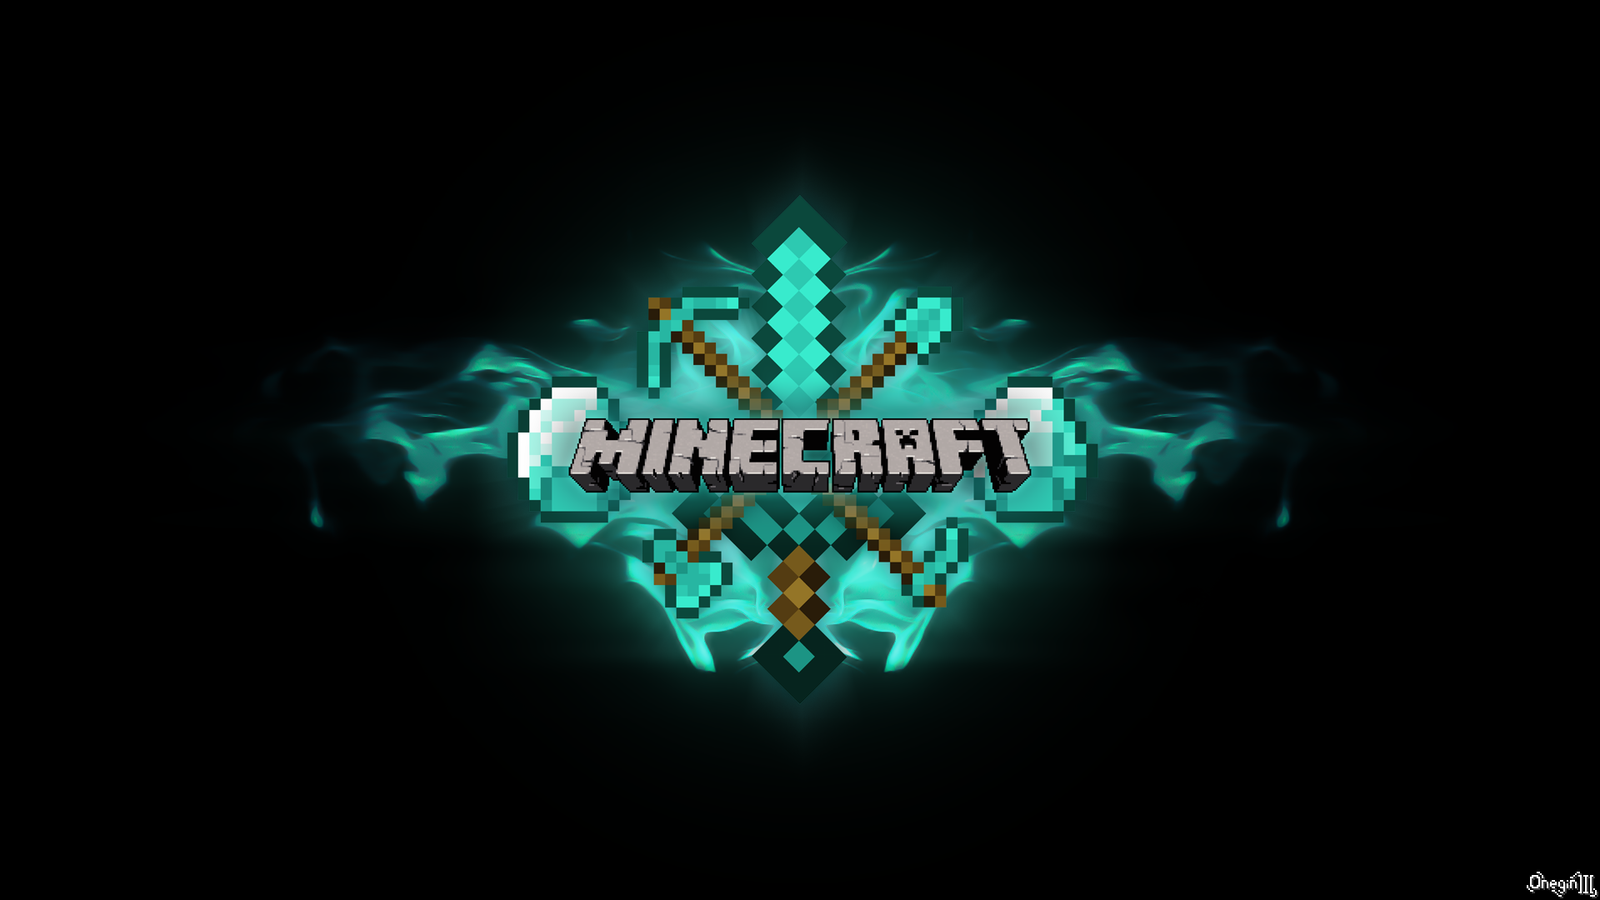 45 Wallpapers From Minecraft On Wallpapersafari